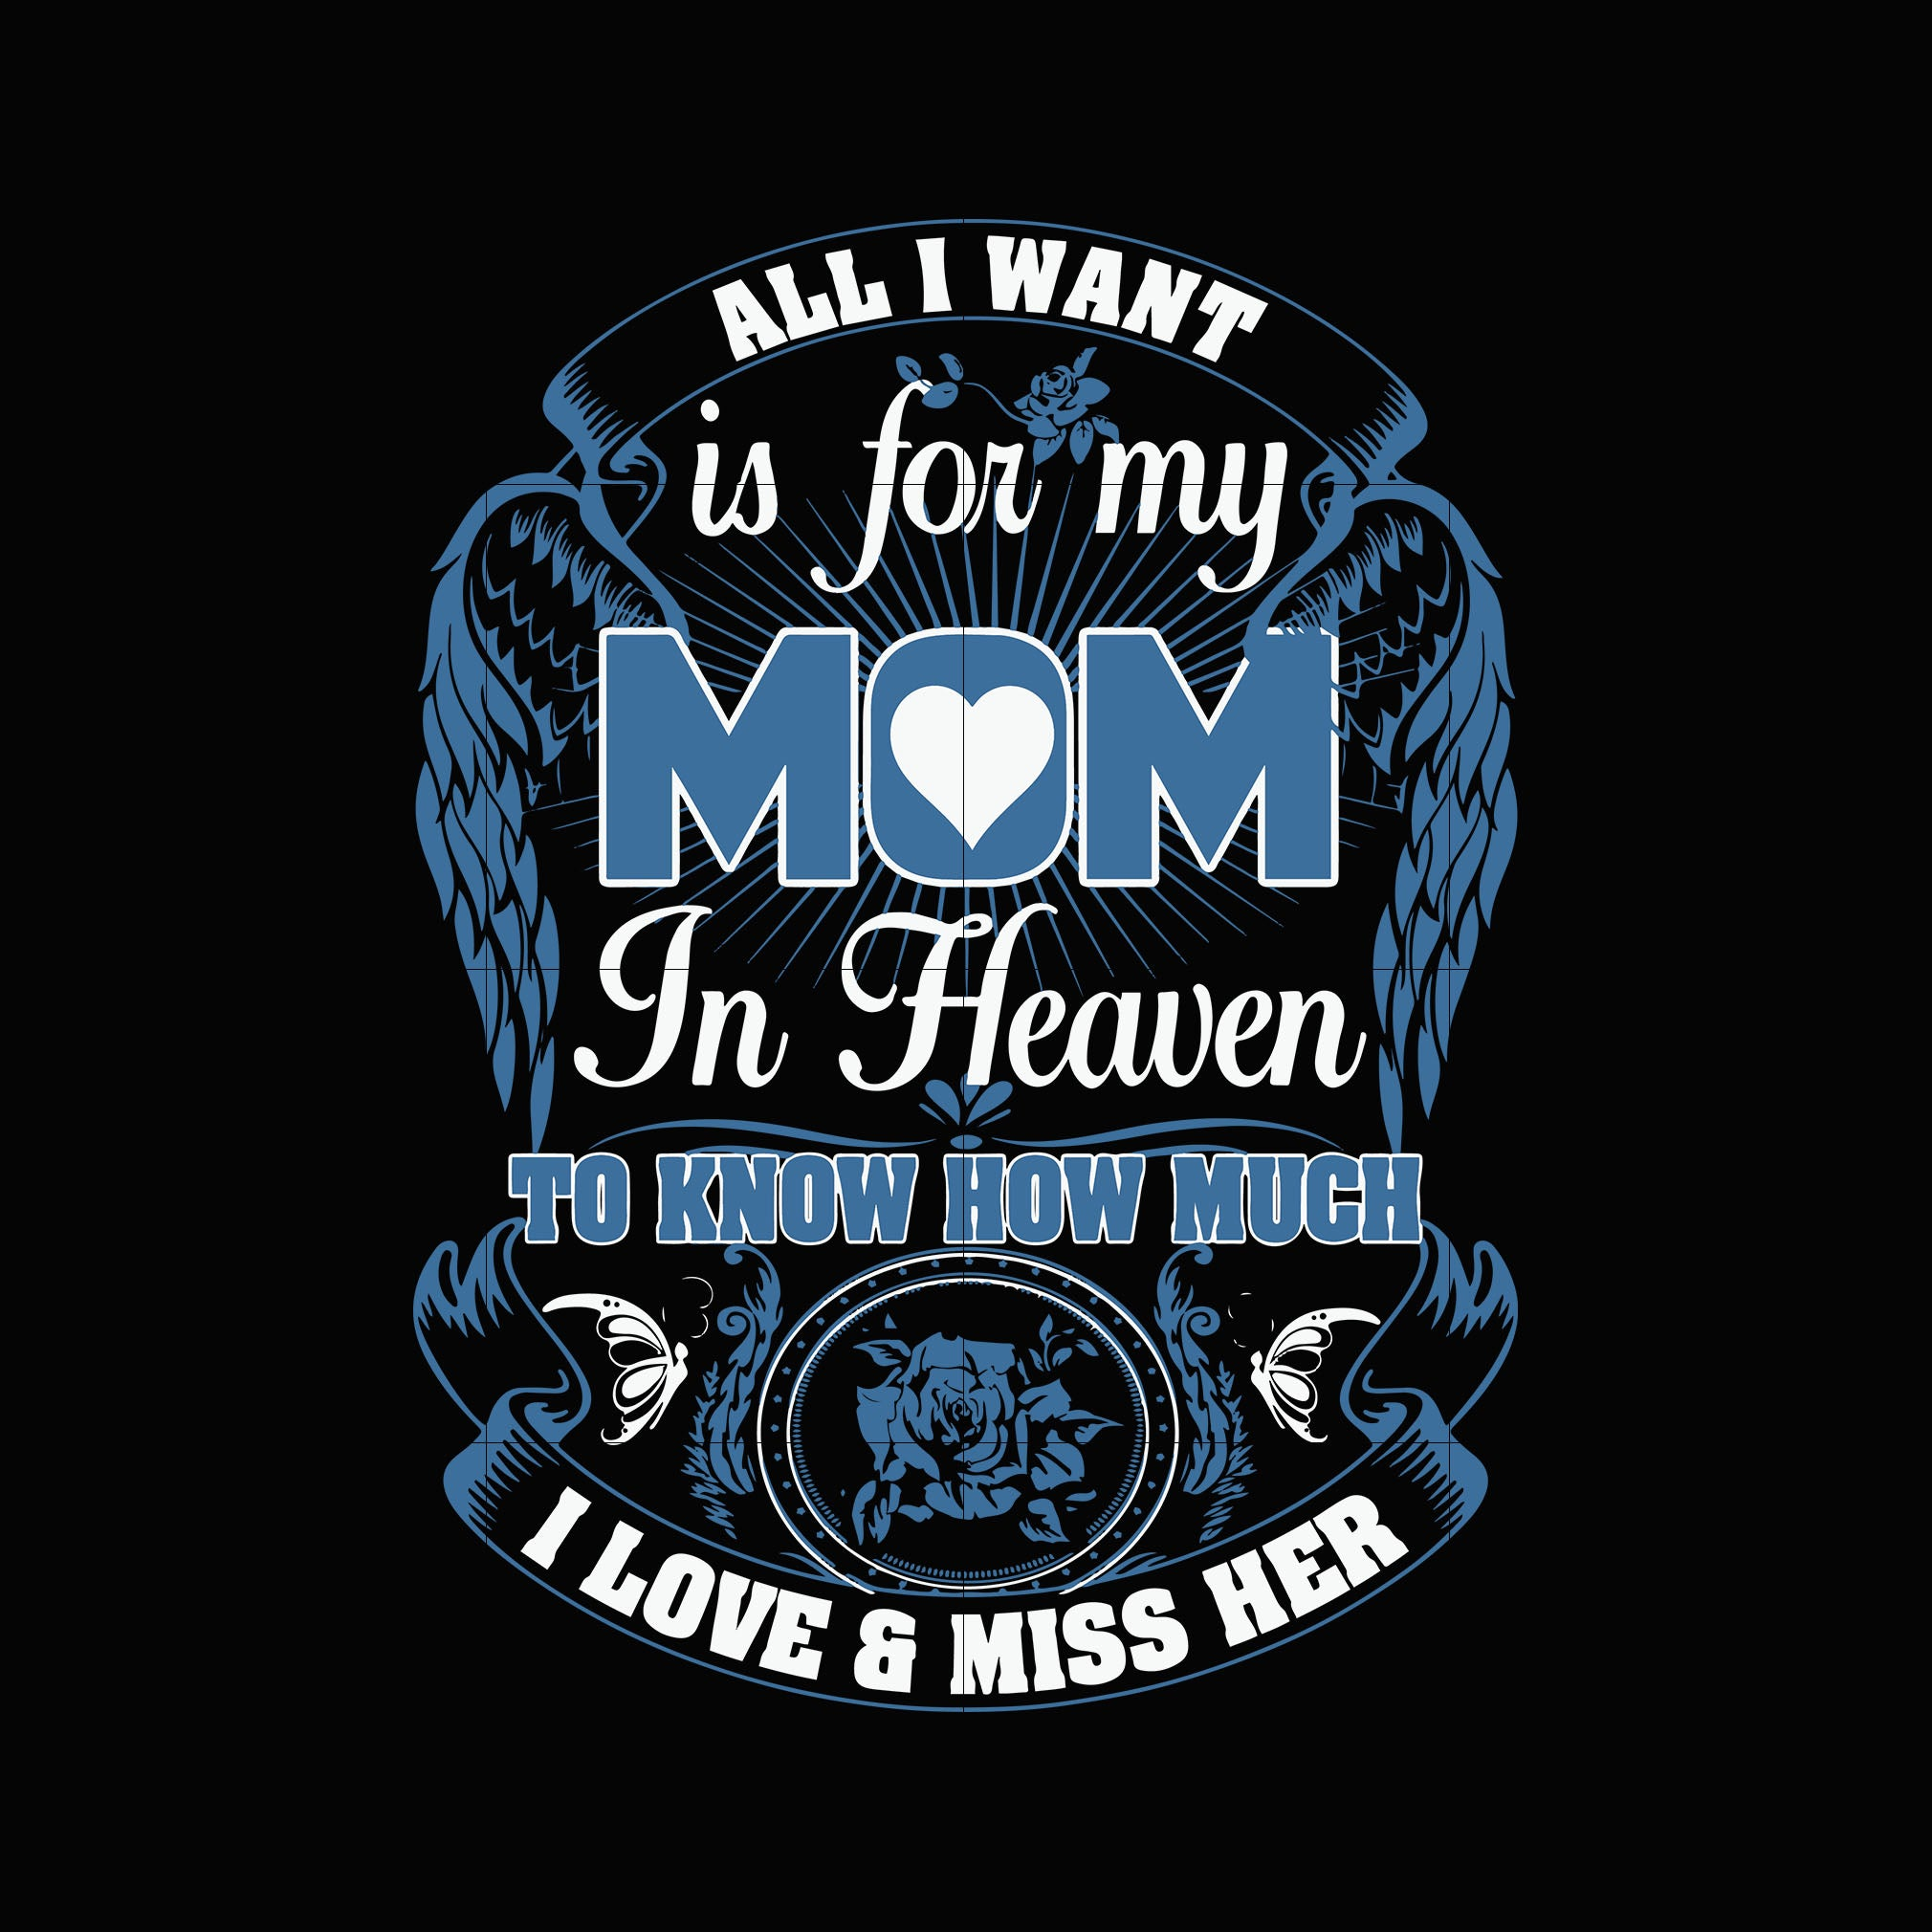 All I want is for my mom in heaven to know how much i love and miss her svg,dxf,eps,png digital file